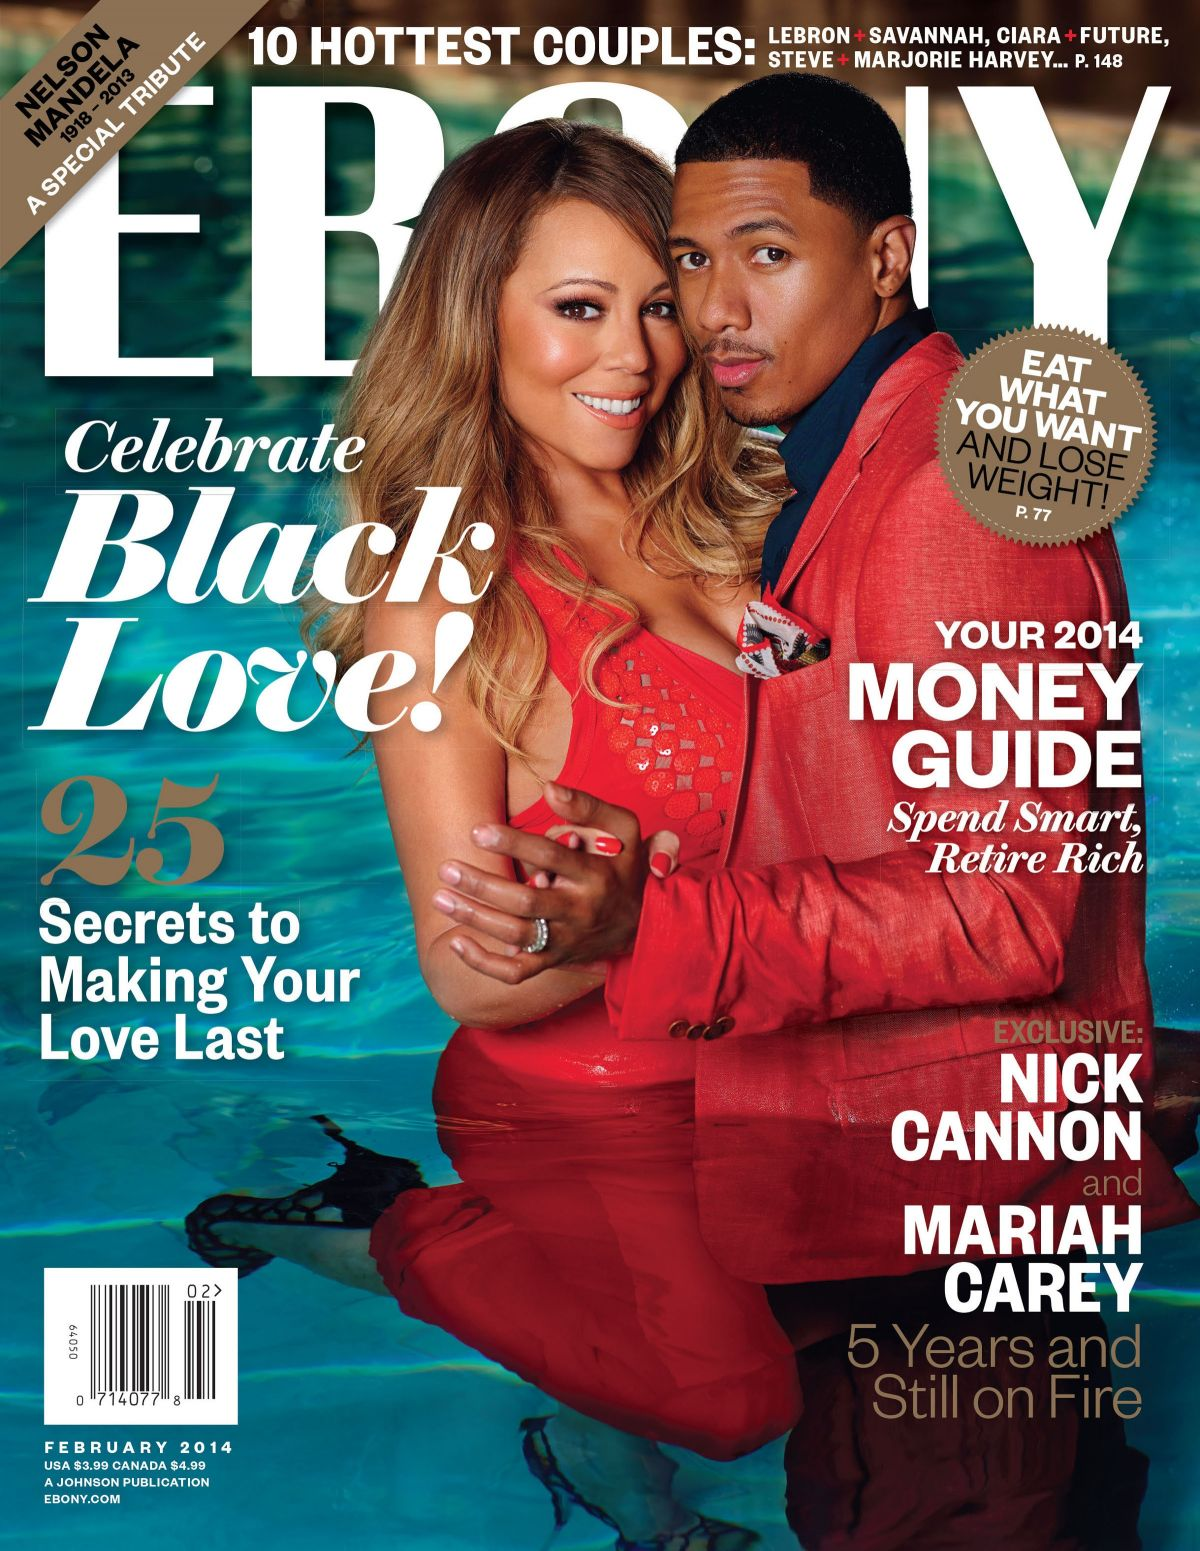 MARIAH CAREY on the Cover Ebony Magazine, February 2014 Issue